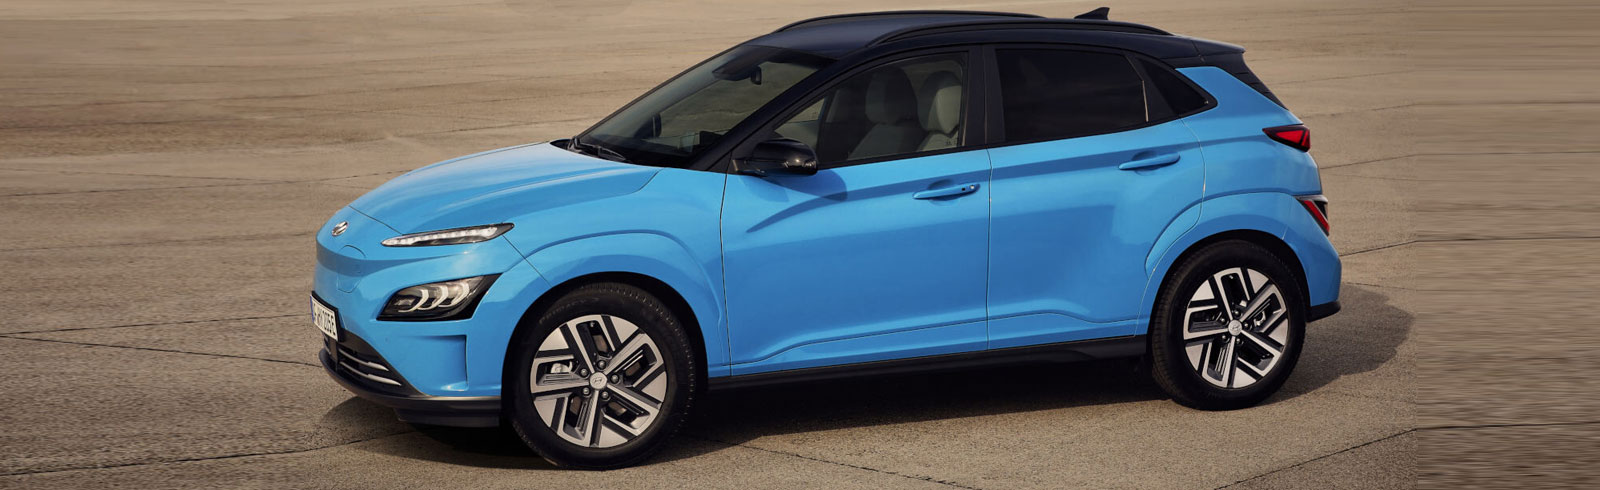 Hyundai offers a facelift and several updates for the 2021 Hyundai Kona Electric